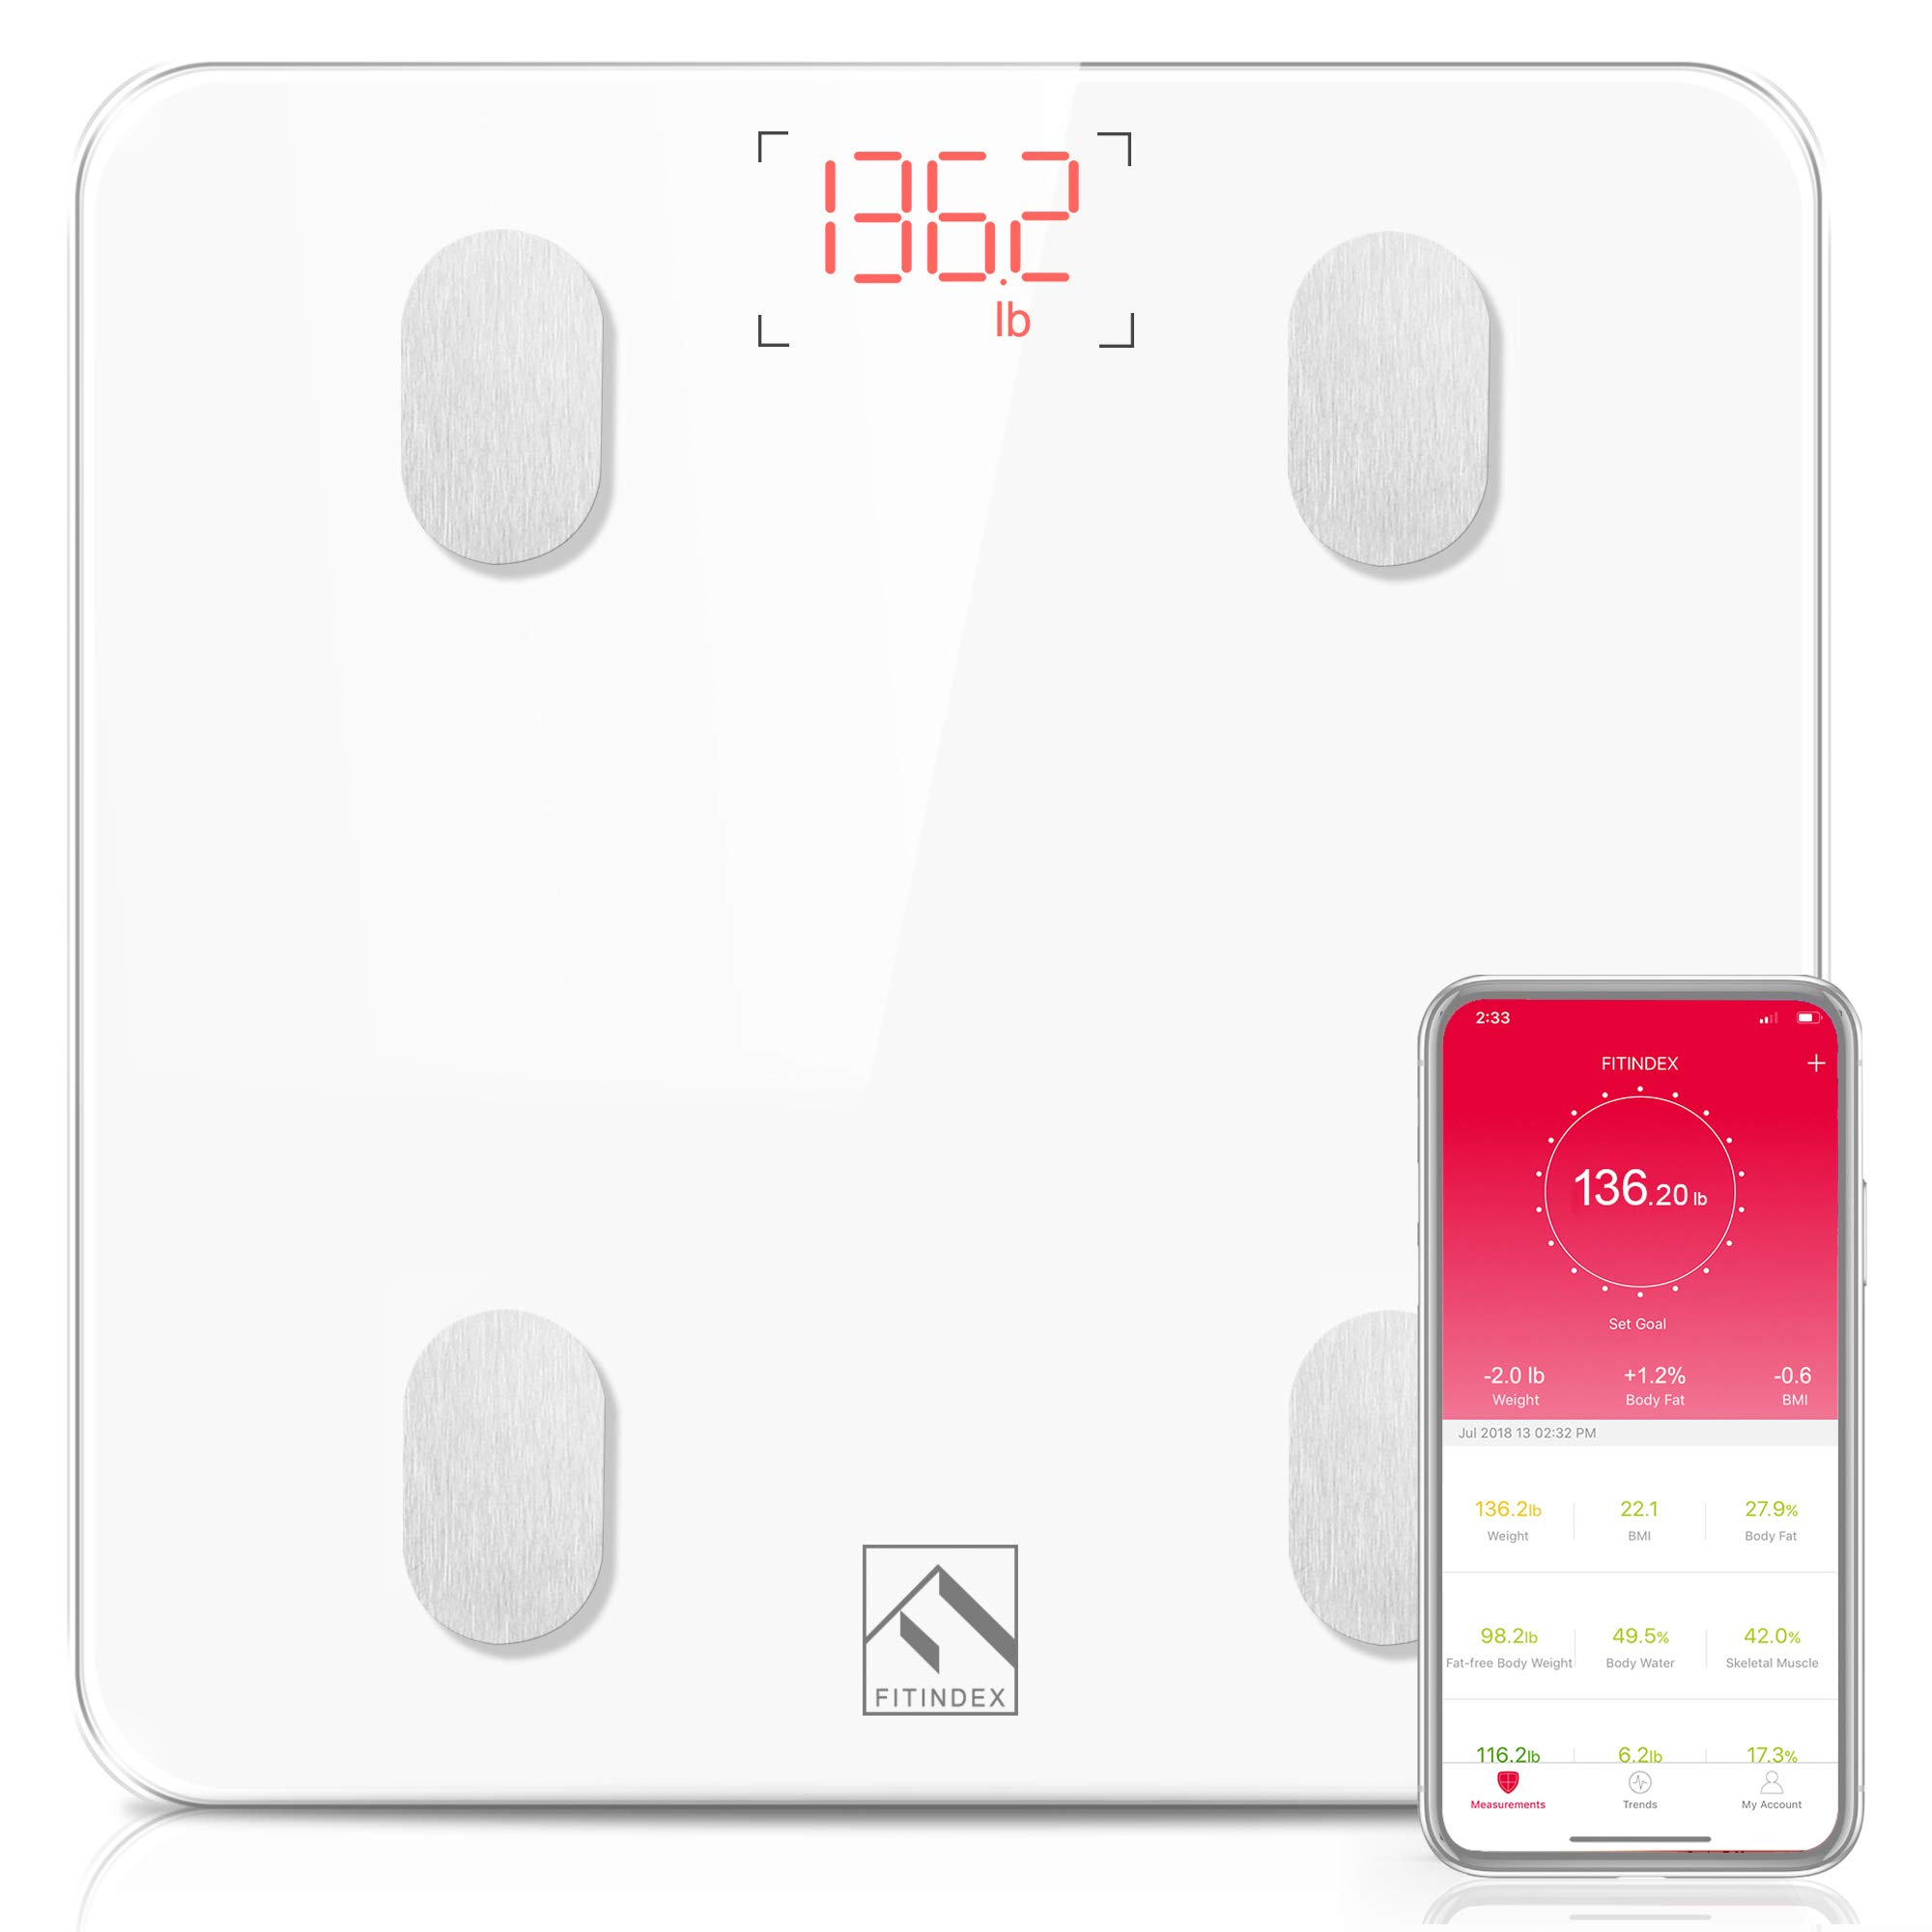 Bluetooth Body Fat Scale, FITINDEX Smart Wireless Digital Bathroom Weight Scale Body Composition Monitor Health Analyzer with Smartphone APP for Body Weight, Fat, Water, BMI, BMR, Muscle Mass